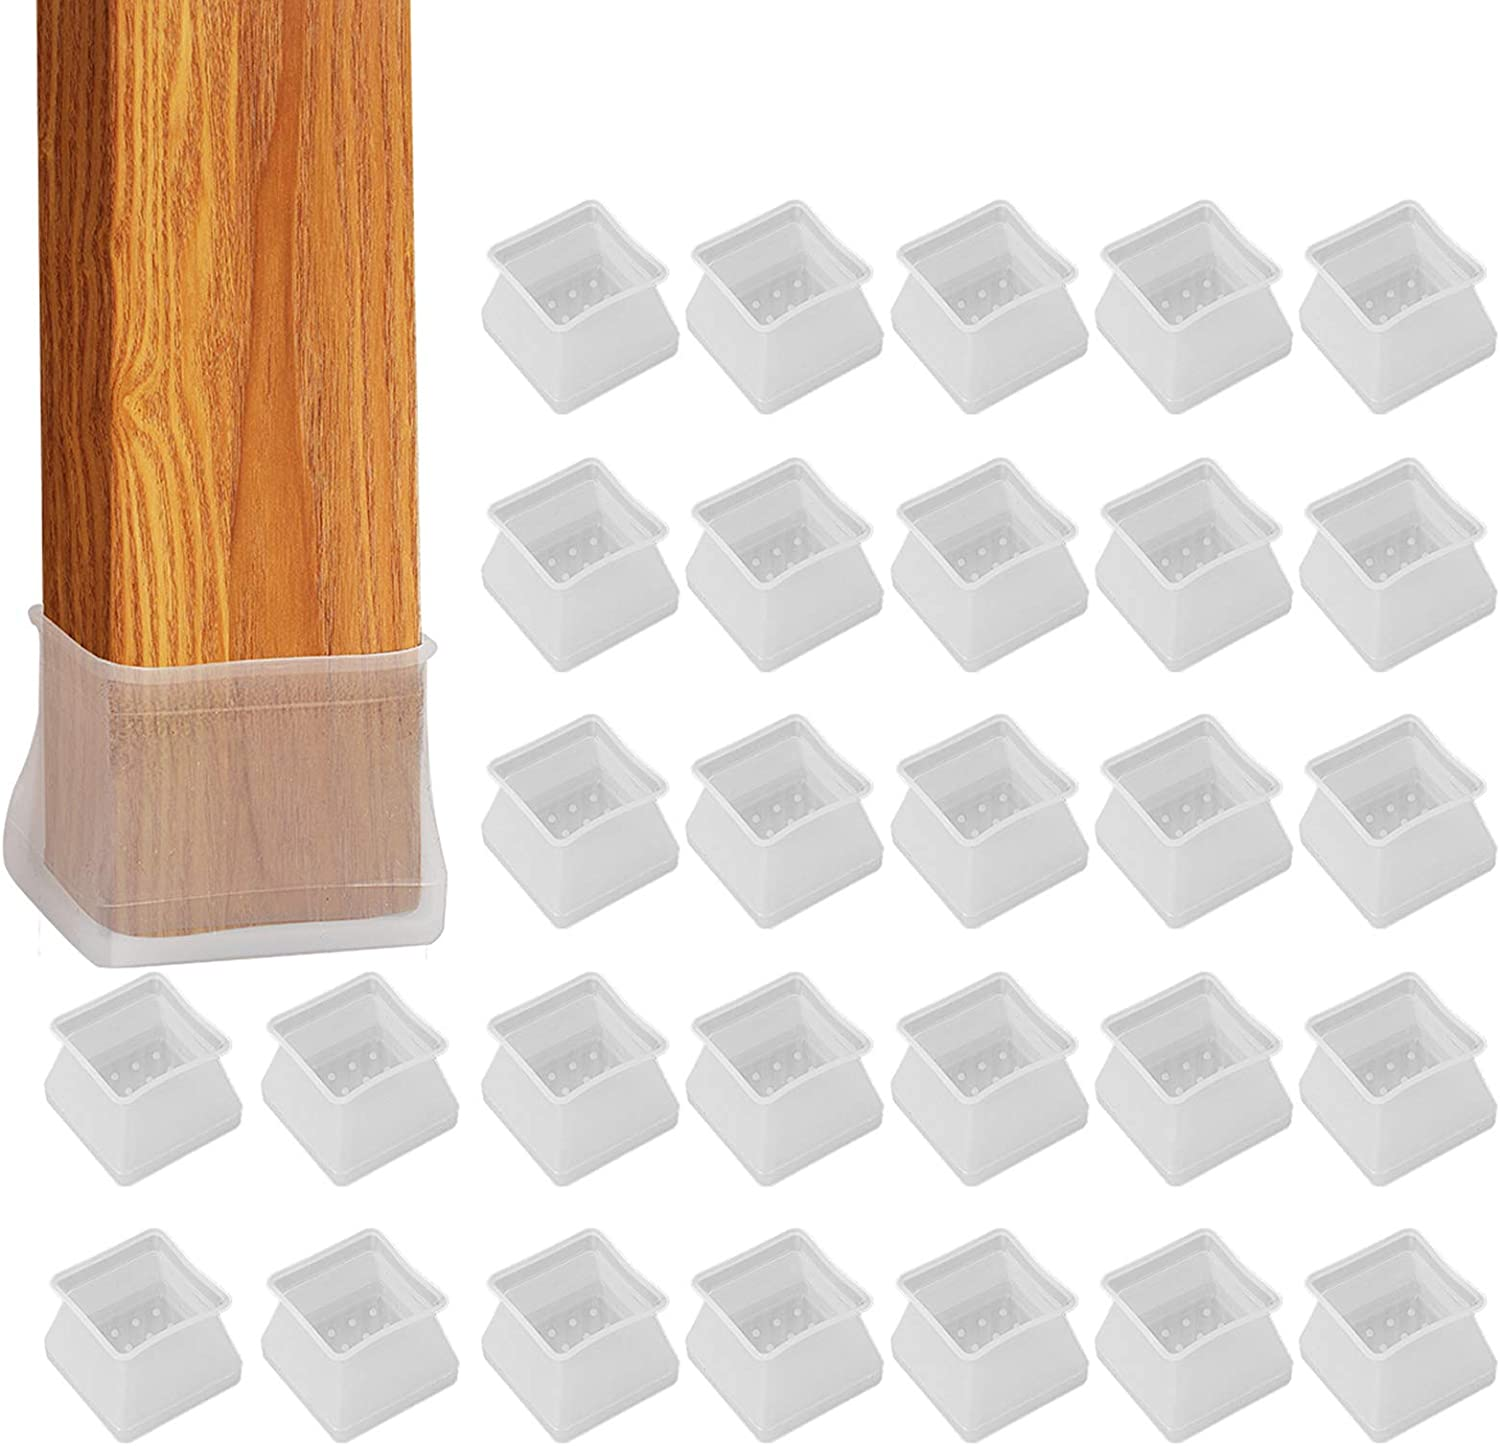 32Pcs Furniture Silicone Protection Cover - Square Silicone Chair Leg Floor Protectors, Fit Square Length 1-3/8 inches to 1-9/16 inches, Anti-Slip Bottom Prevent Scratches and Noise